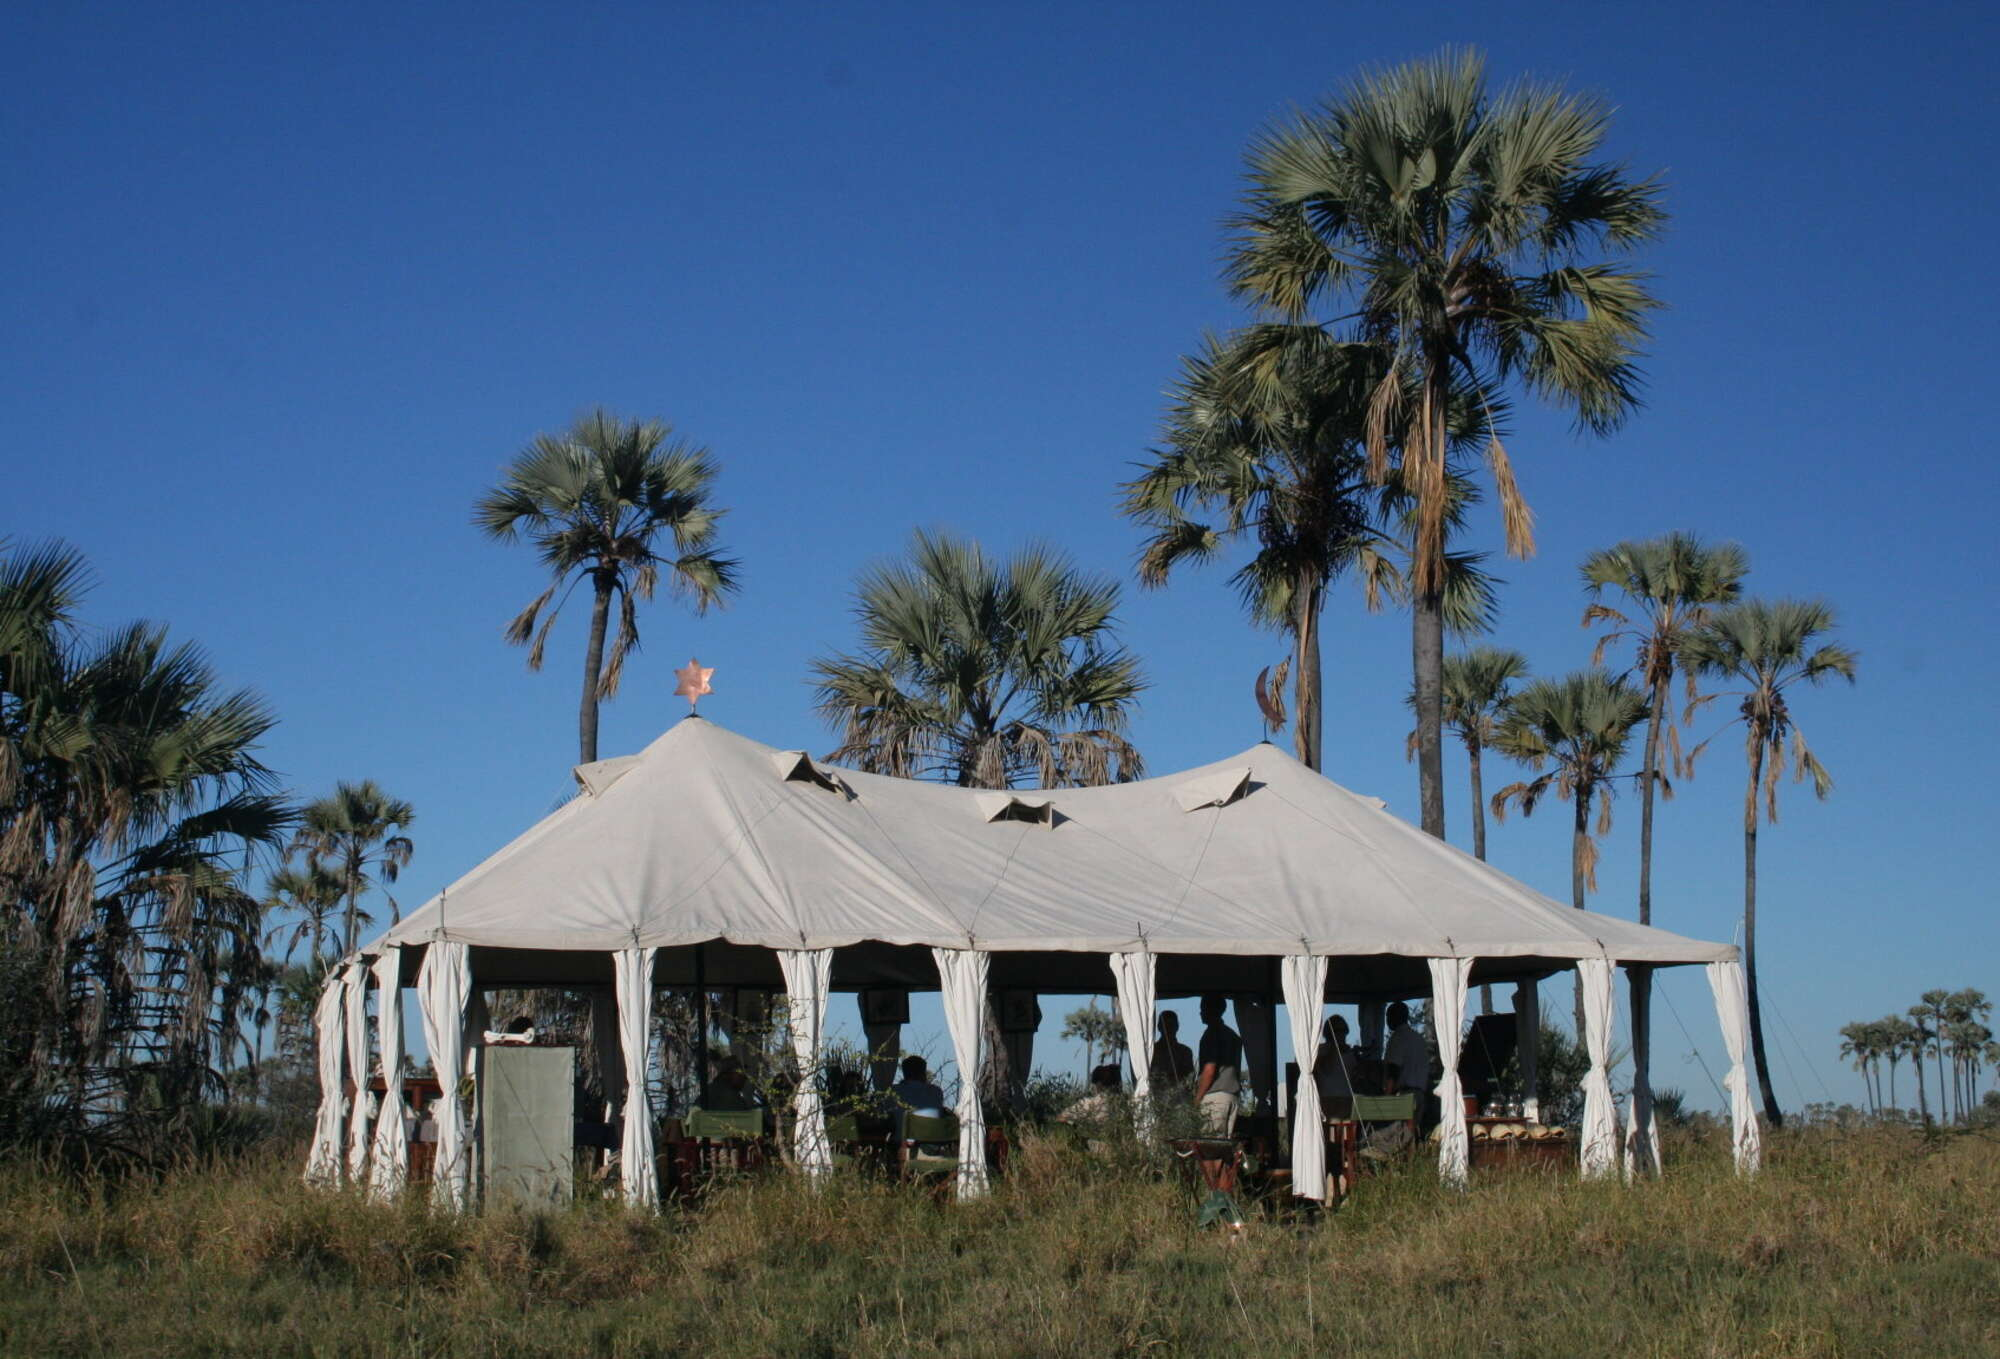 Botswana safari staying at San Camp on the eastern side of the Makgadikgadi Pans National Park.